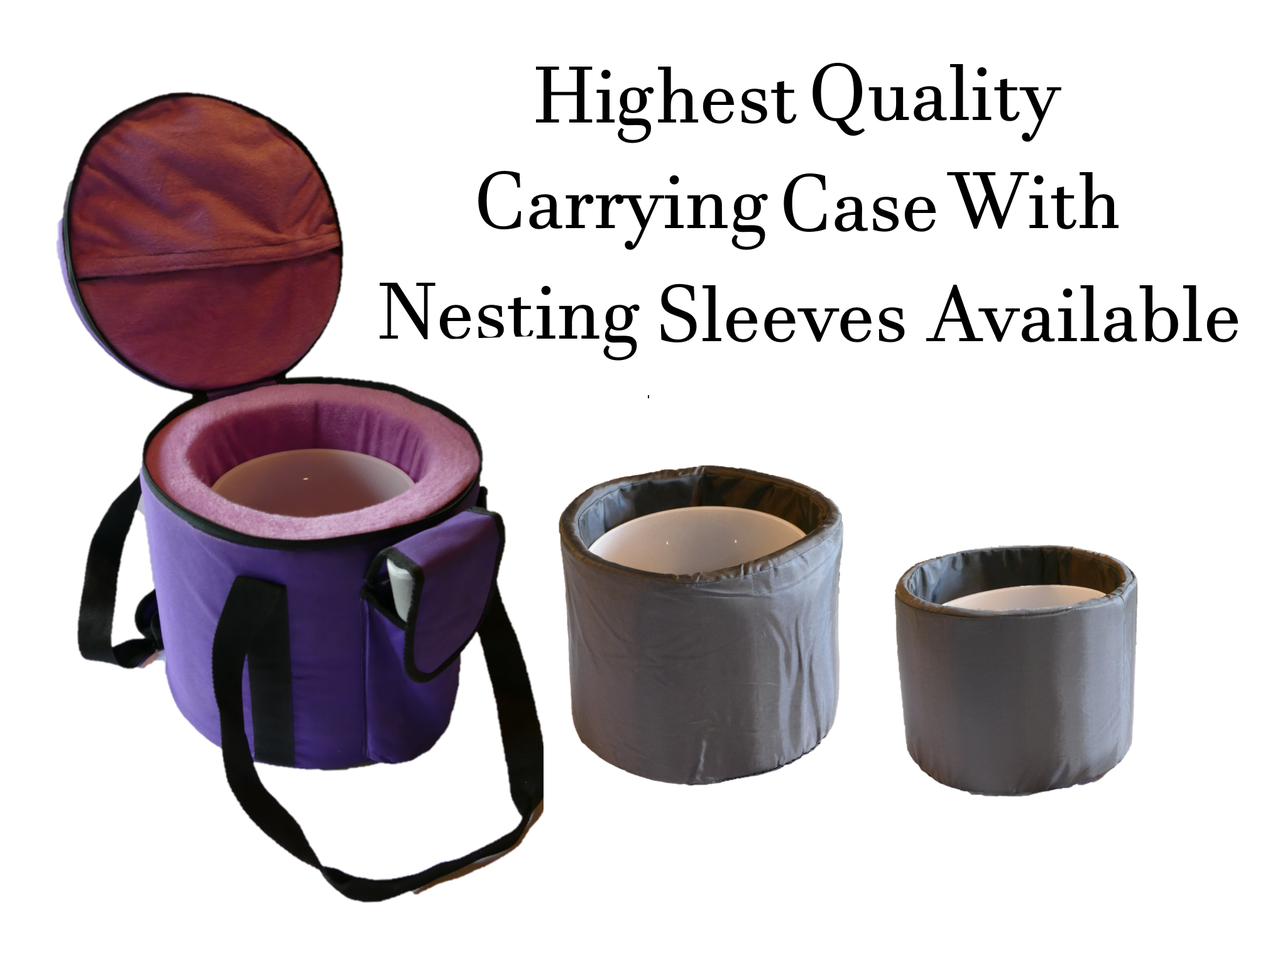 highest-quality-nesting-carrying-case-78456.png